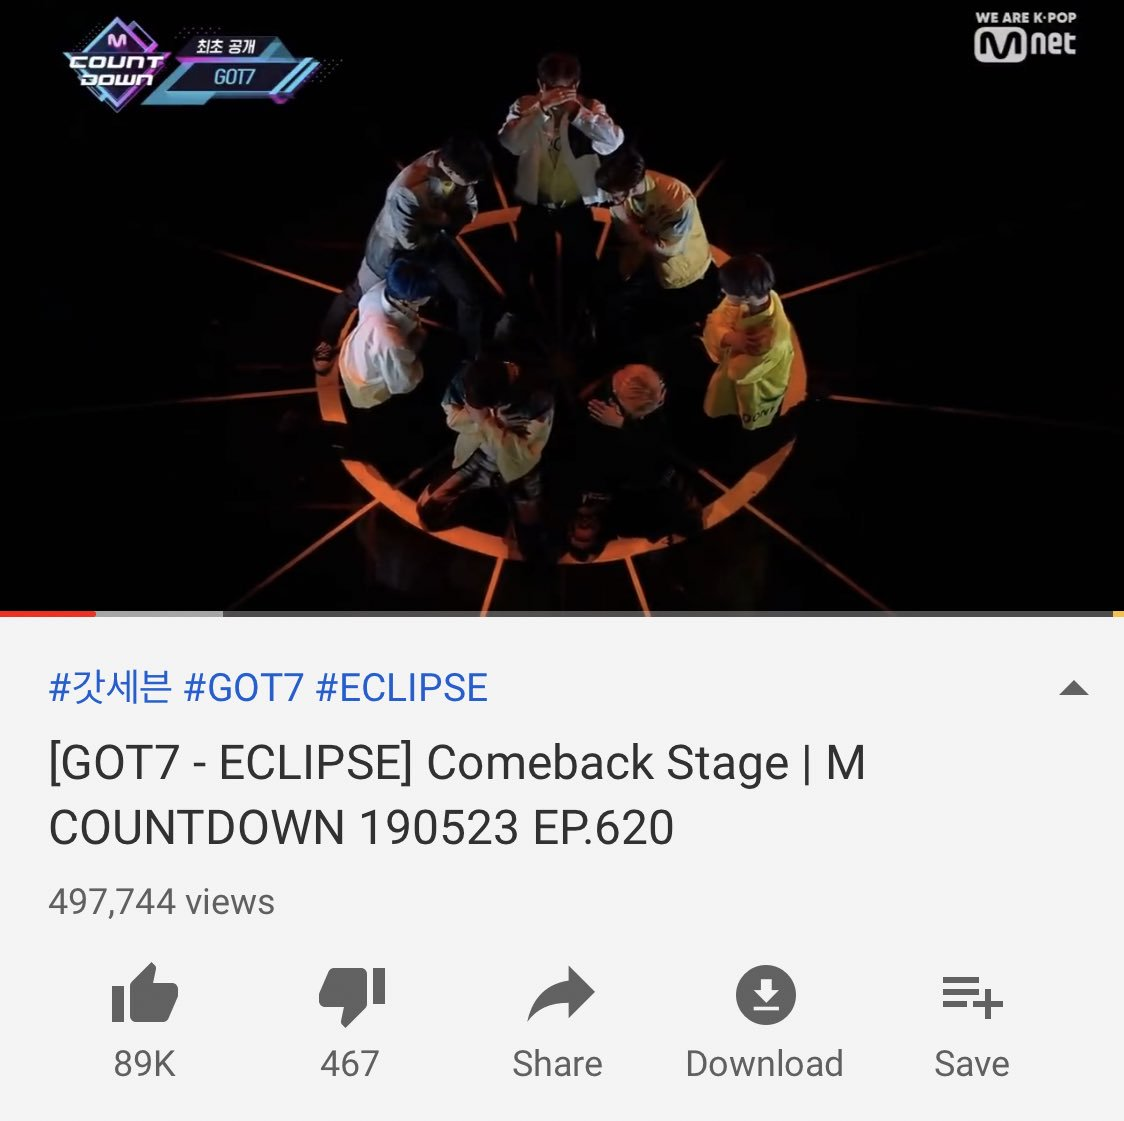 Please keep streaming GOT7's Mcountdown comeback stage Ahgases! We can't let our competition catch up since these views count towards GOT7 winning next week! We need to have a high SNS score to cover for our digital score!   https:// youtu.be/_sA7jMiCY7g  &nbsp;    #GOT7  @GOT7Official<br>http://pic.twitter.com/05BmQ6gGbF